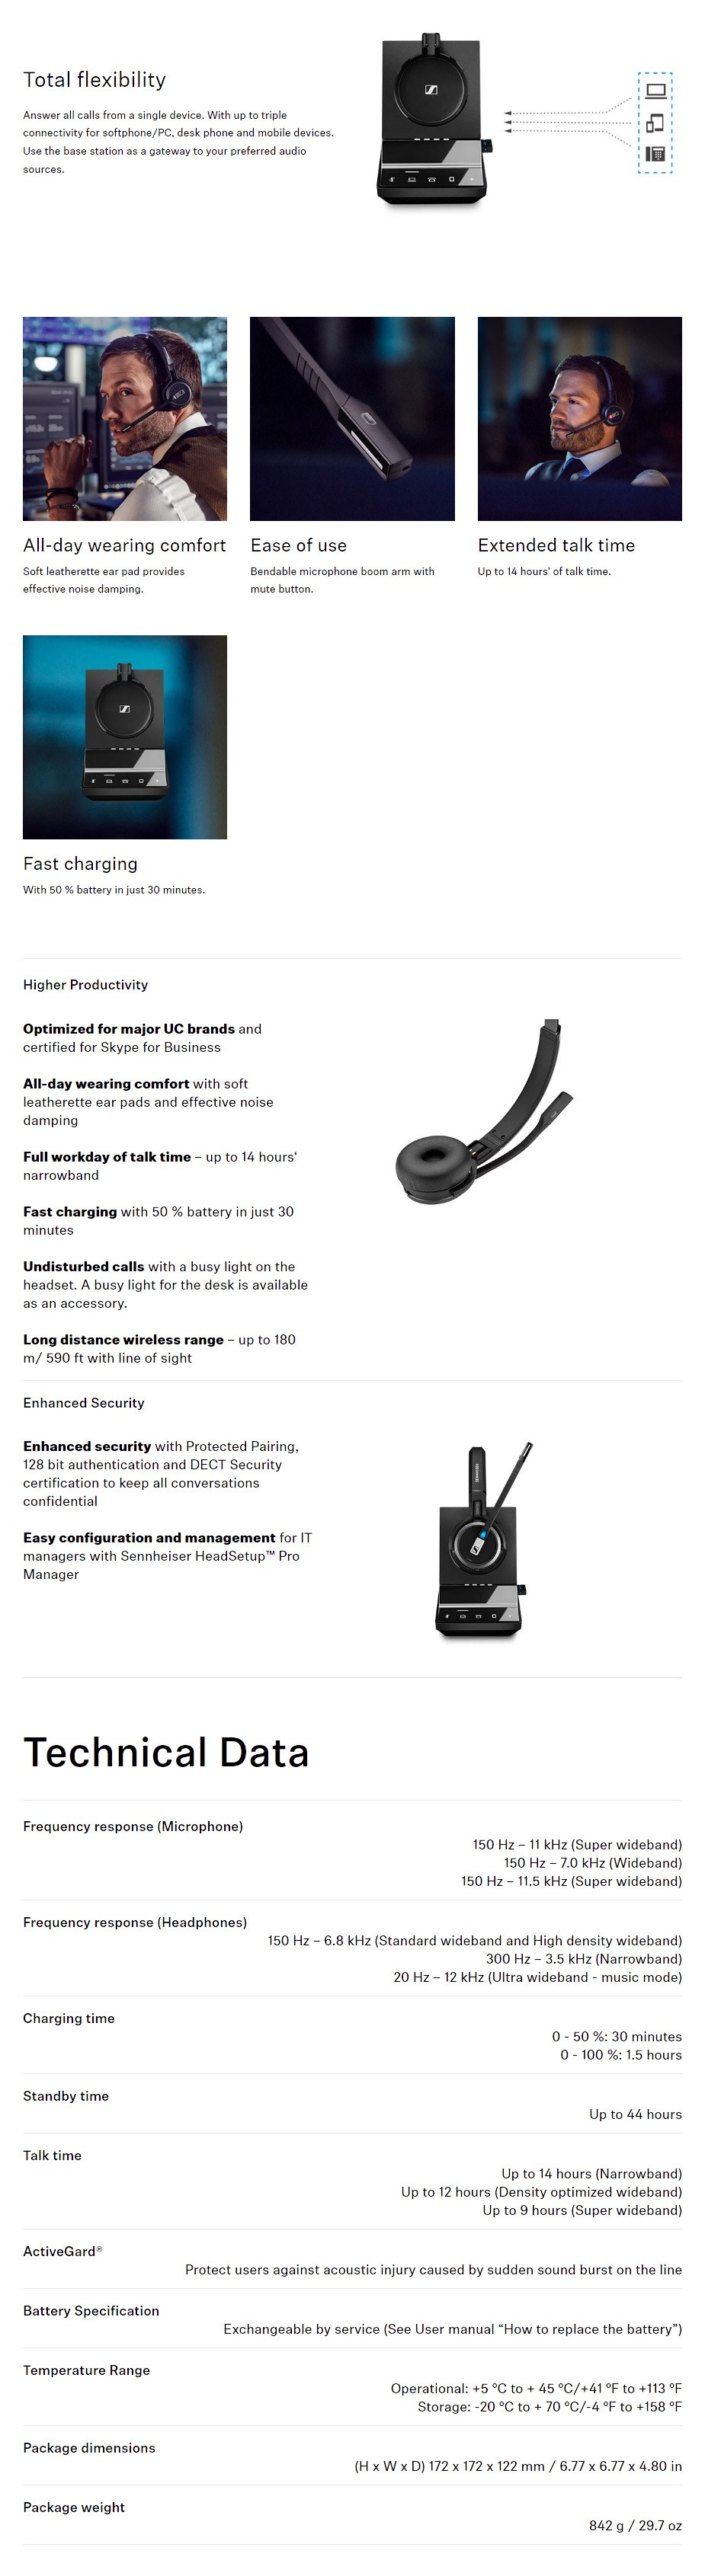 Sennheiser SDW 5036 DECT Wireless Headset with Base Station + BTD 800 Dongle - Overview 1